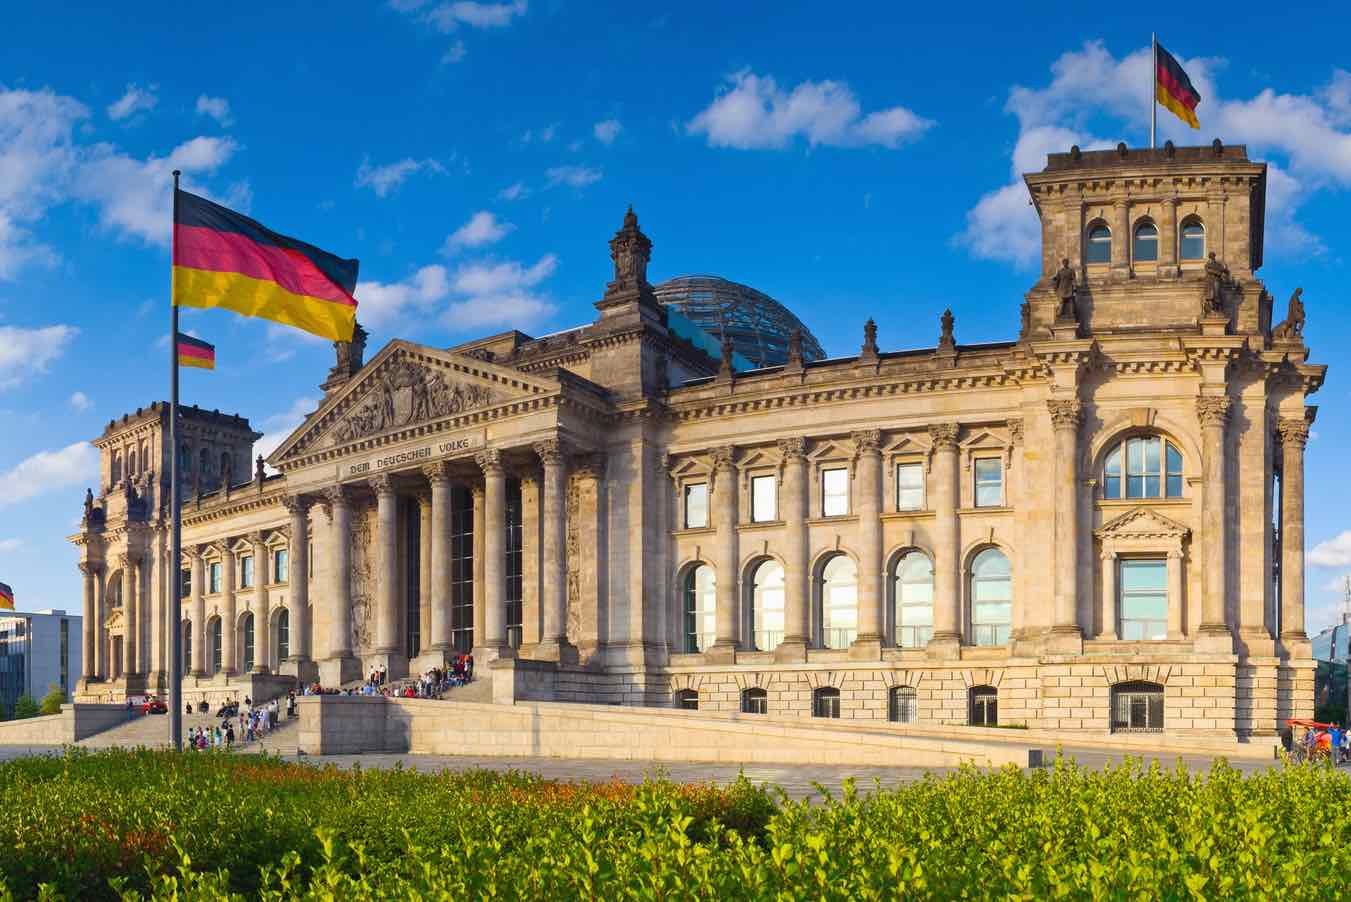 ProLimo | Private Sightseeing Berlin | Quick Tour | Reichstag